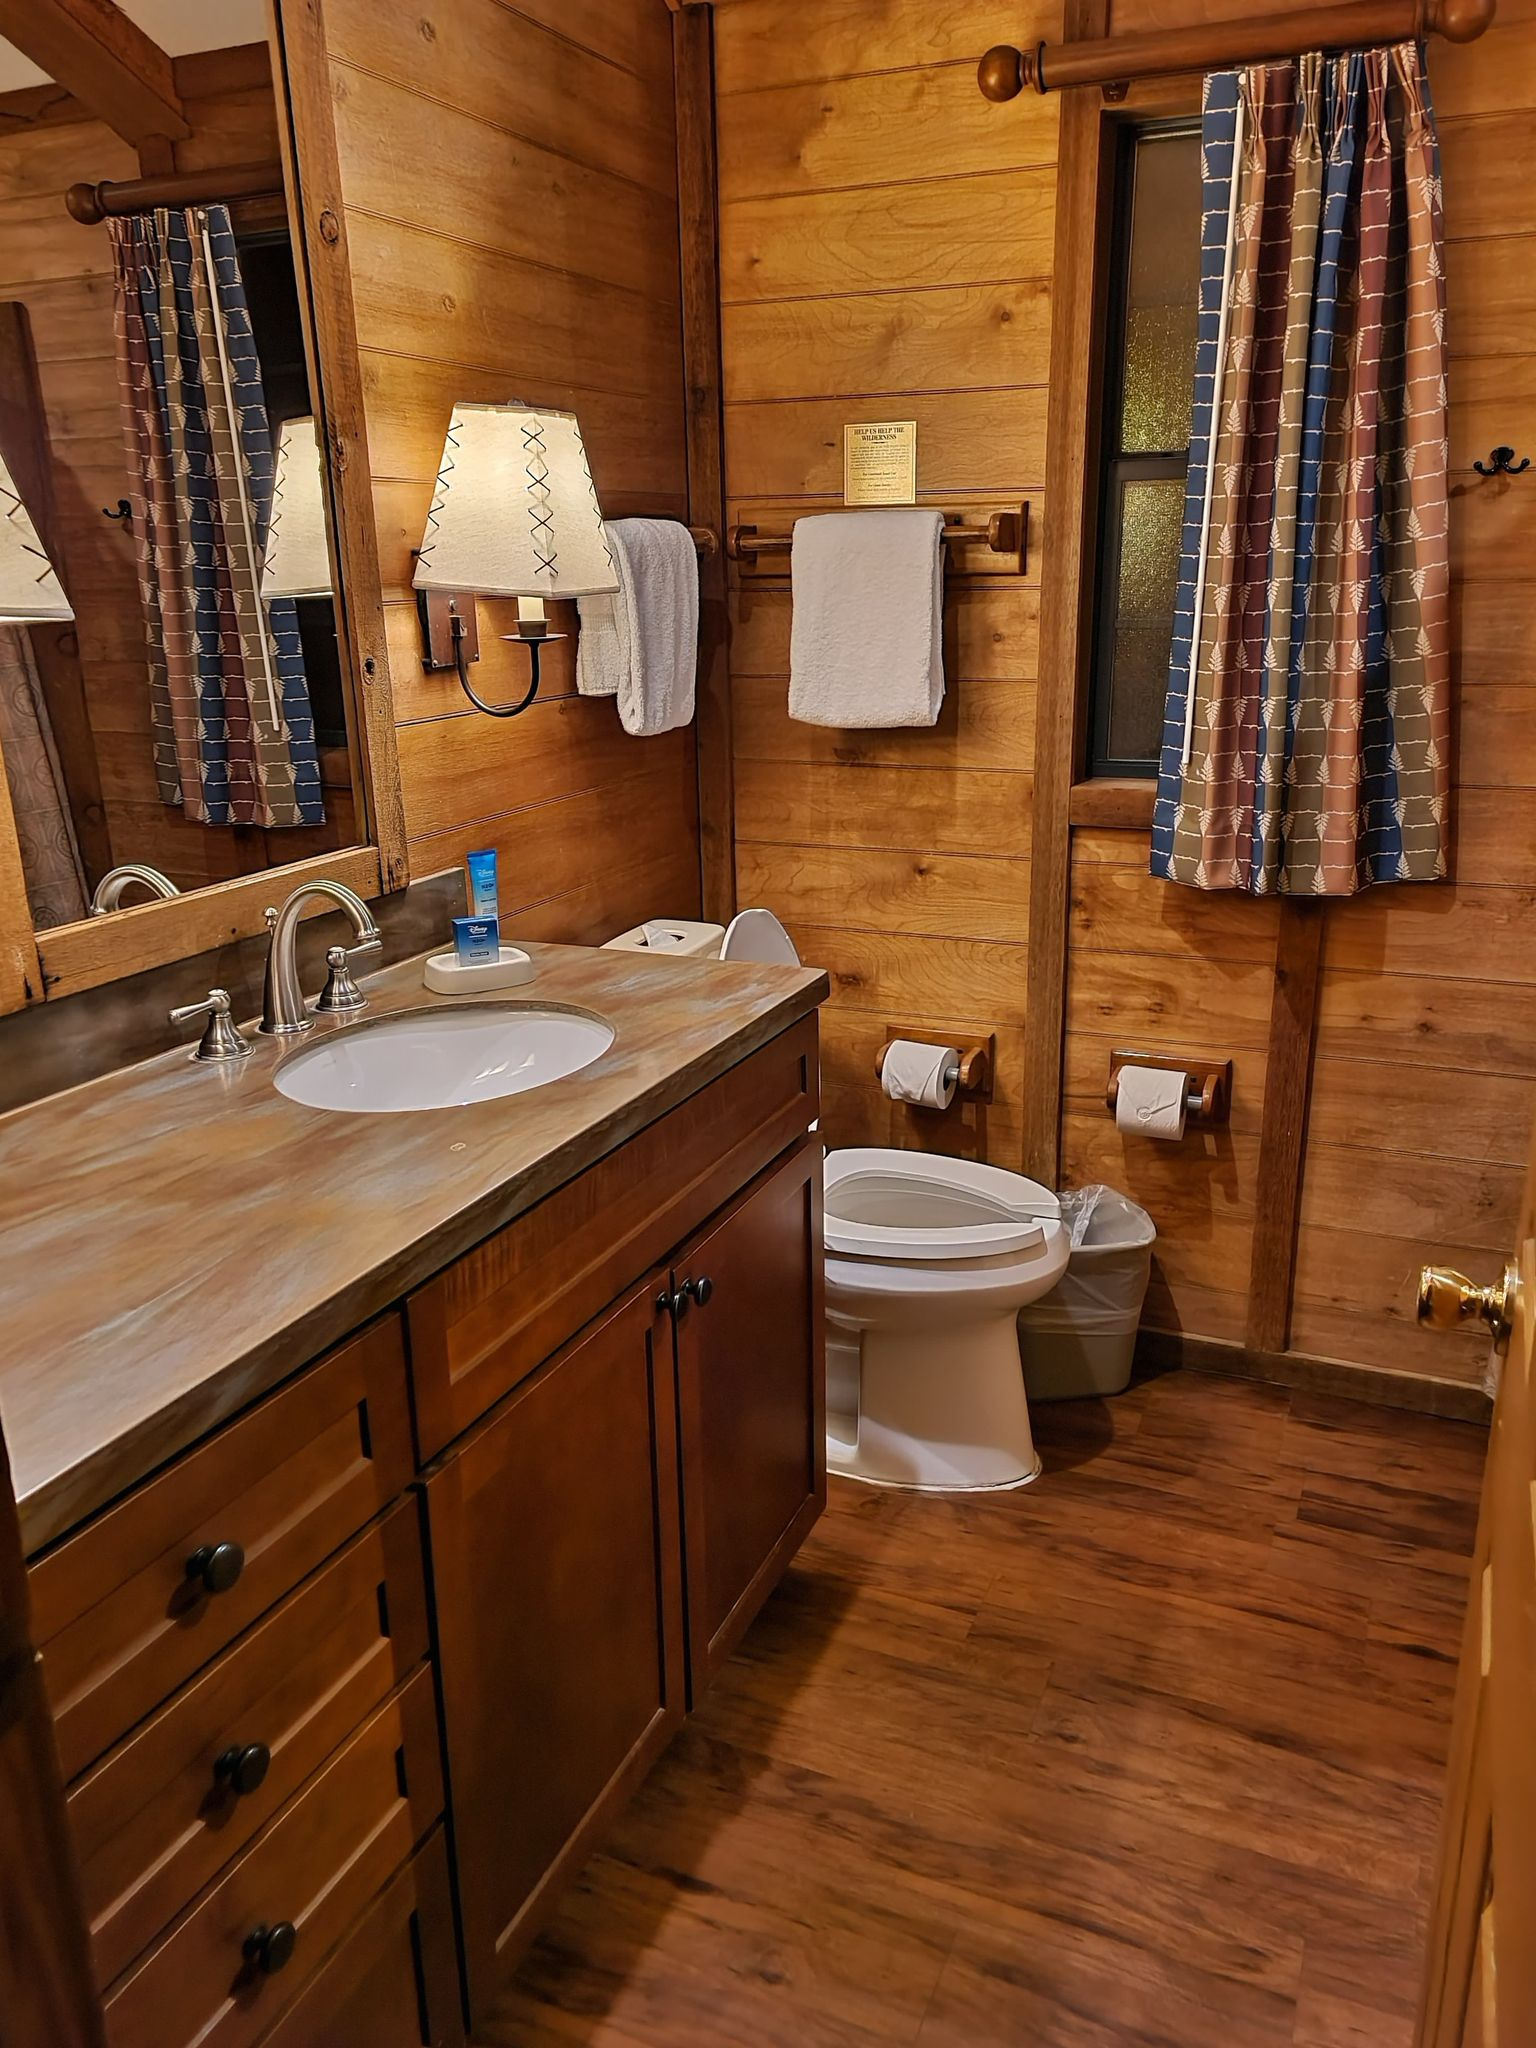 Bathroom in the Cabins at Fort Wilderness